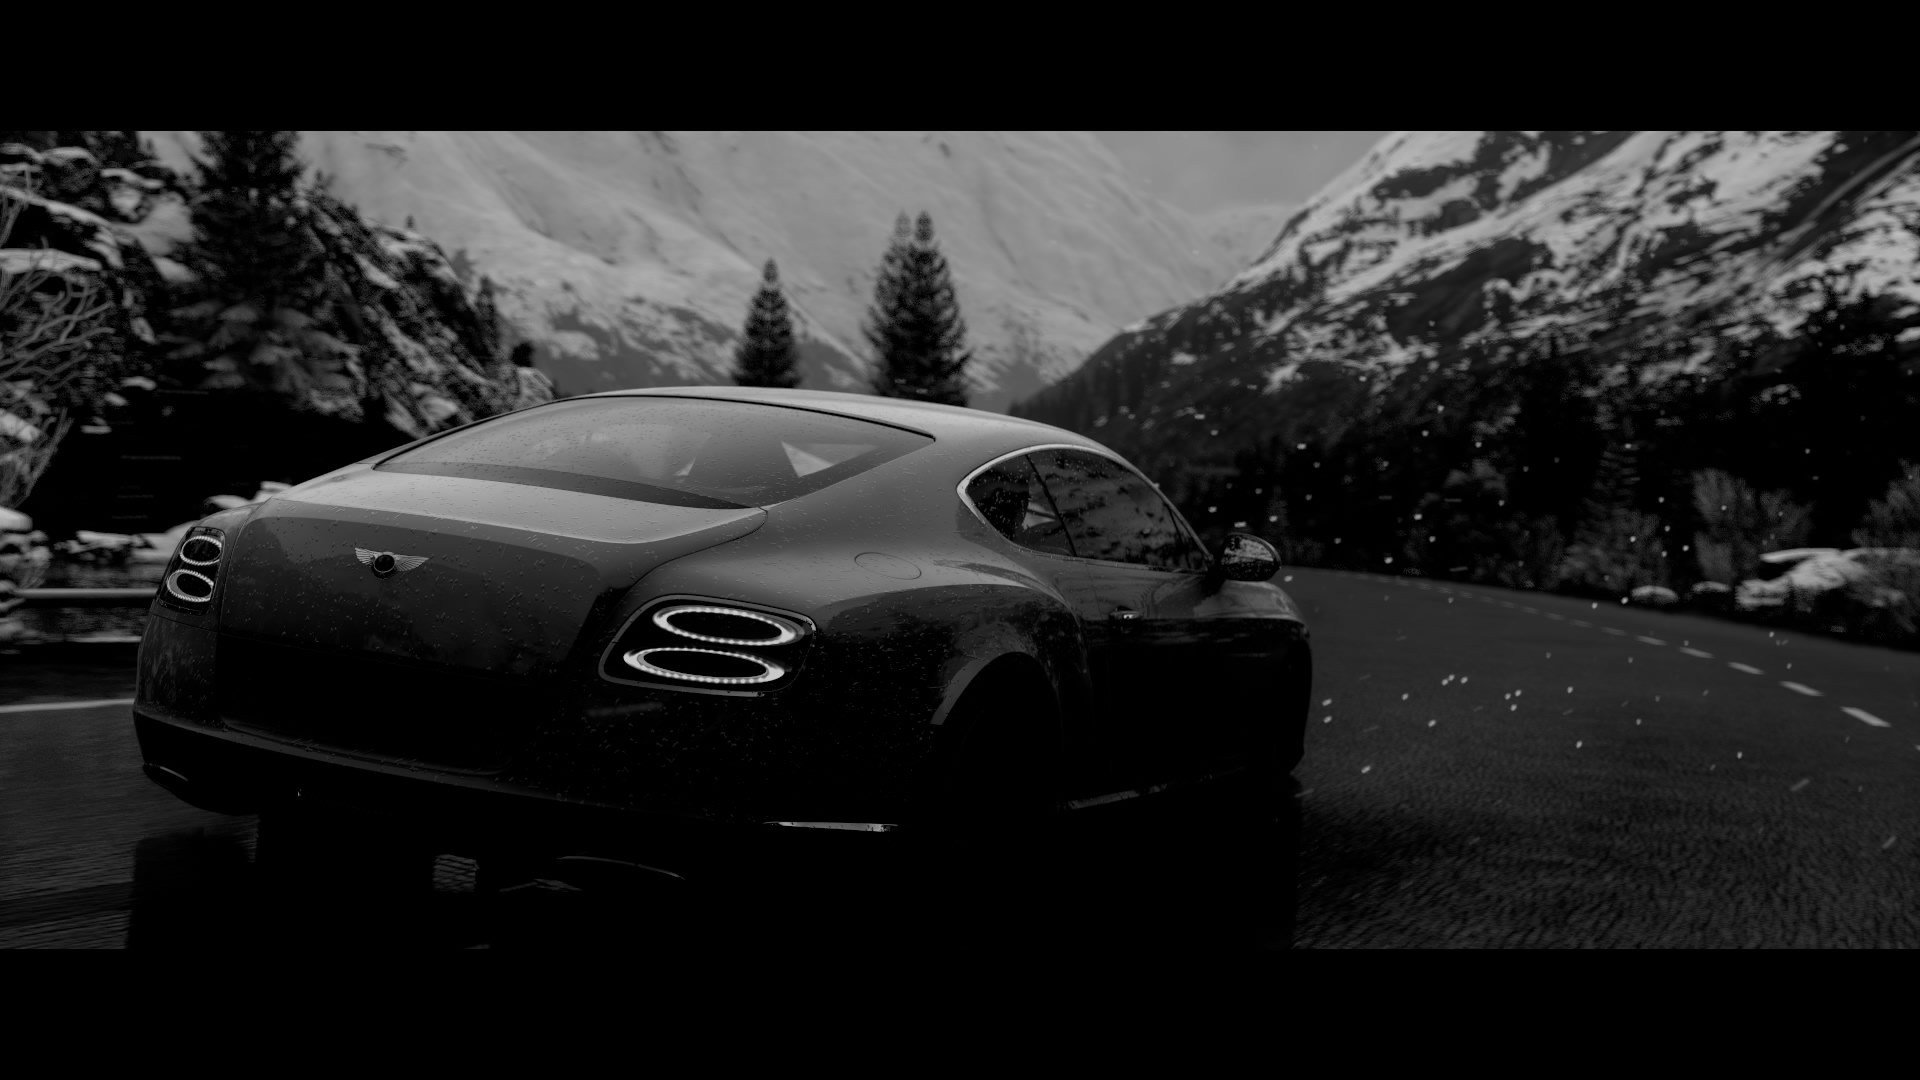 Latest Driveclub Car Rain Bentley Wallpapers Hd Desktop And Free Download